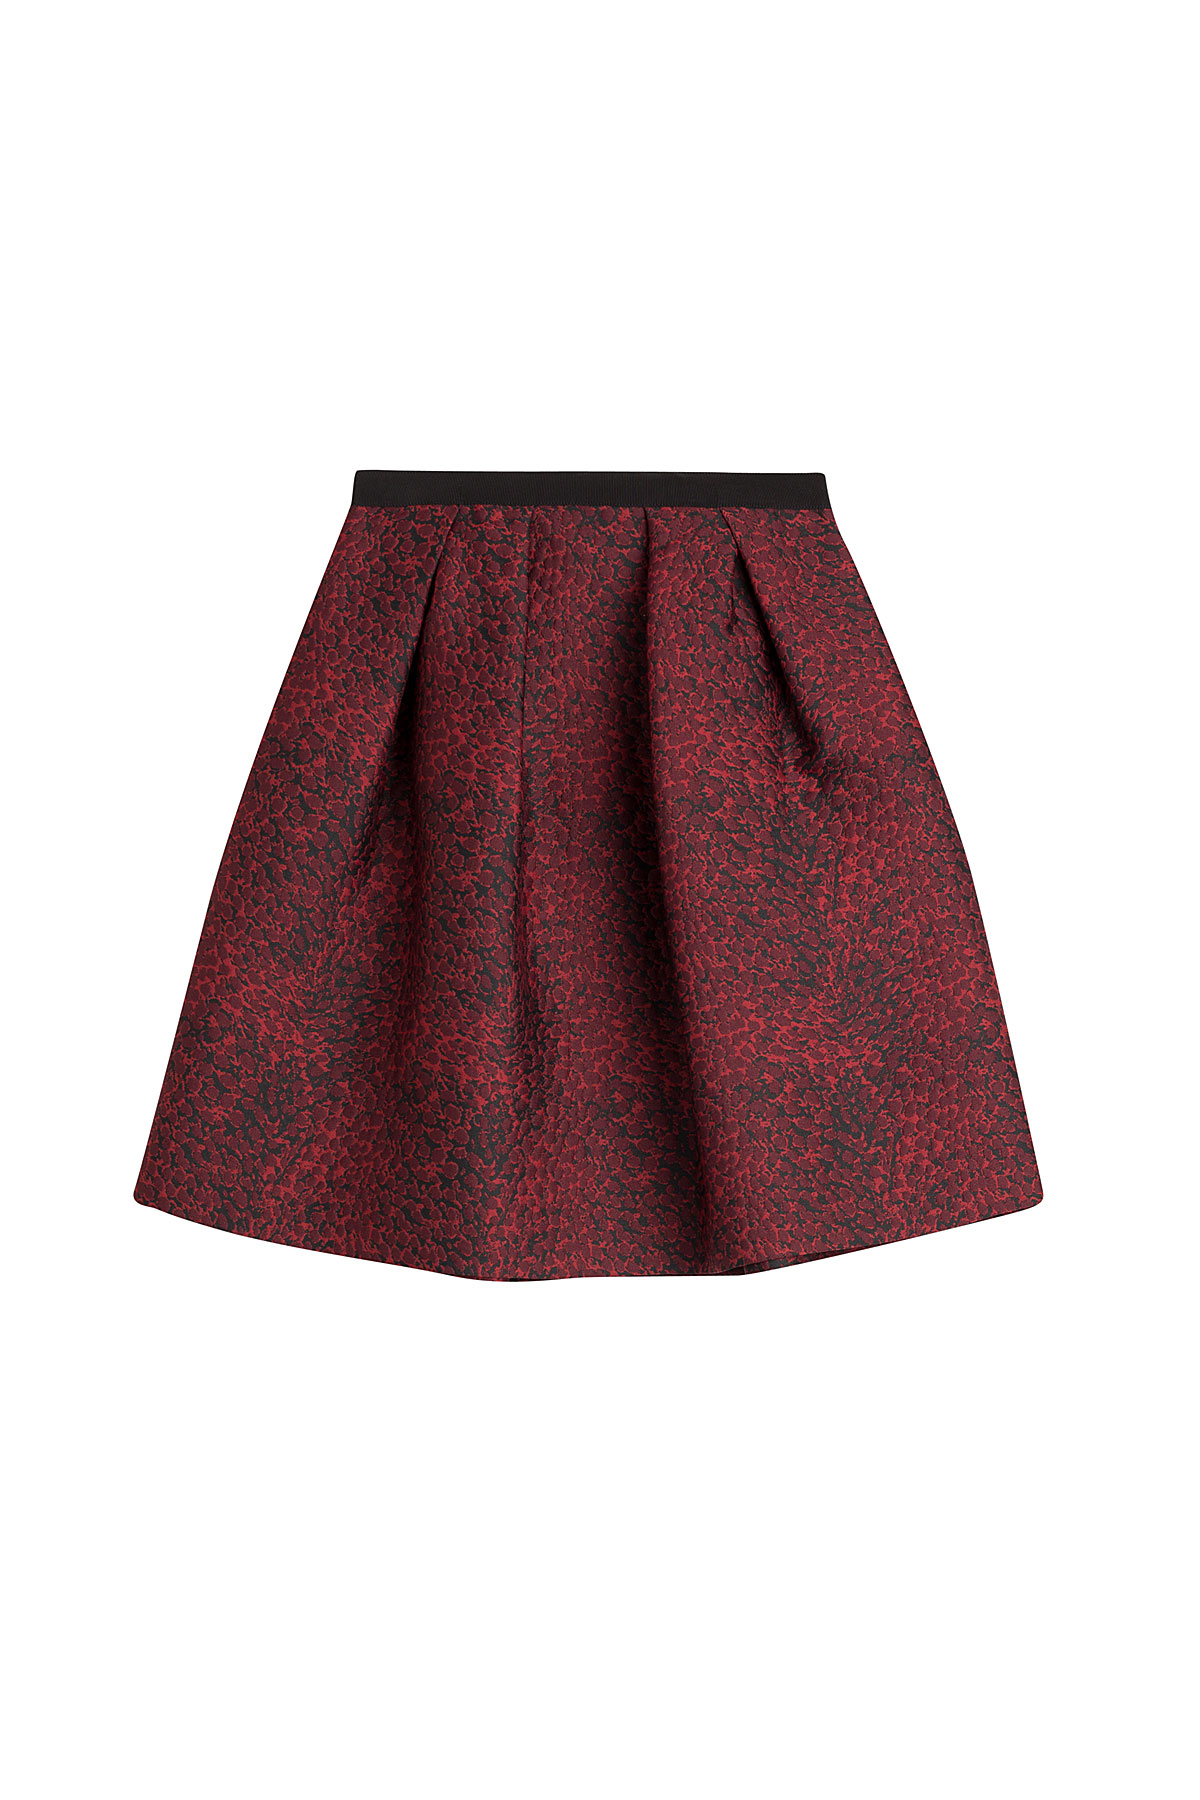 burberry pleated jacquard skirt in save 31 lyst